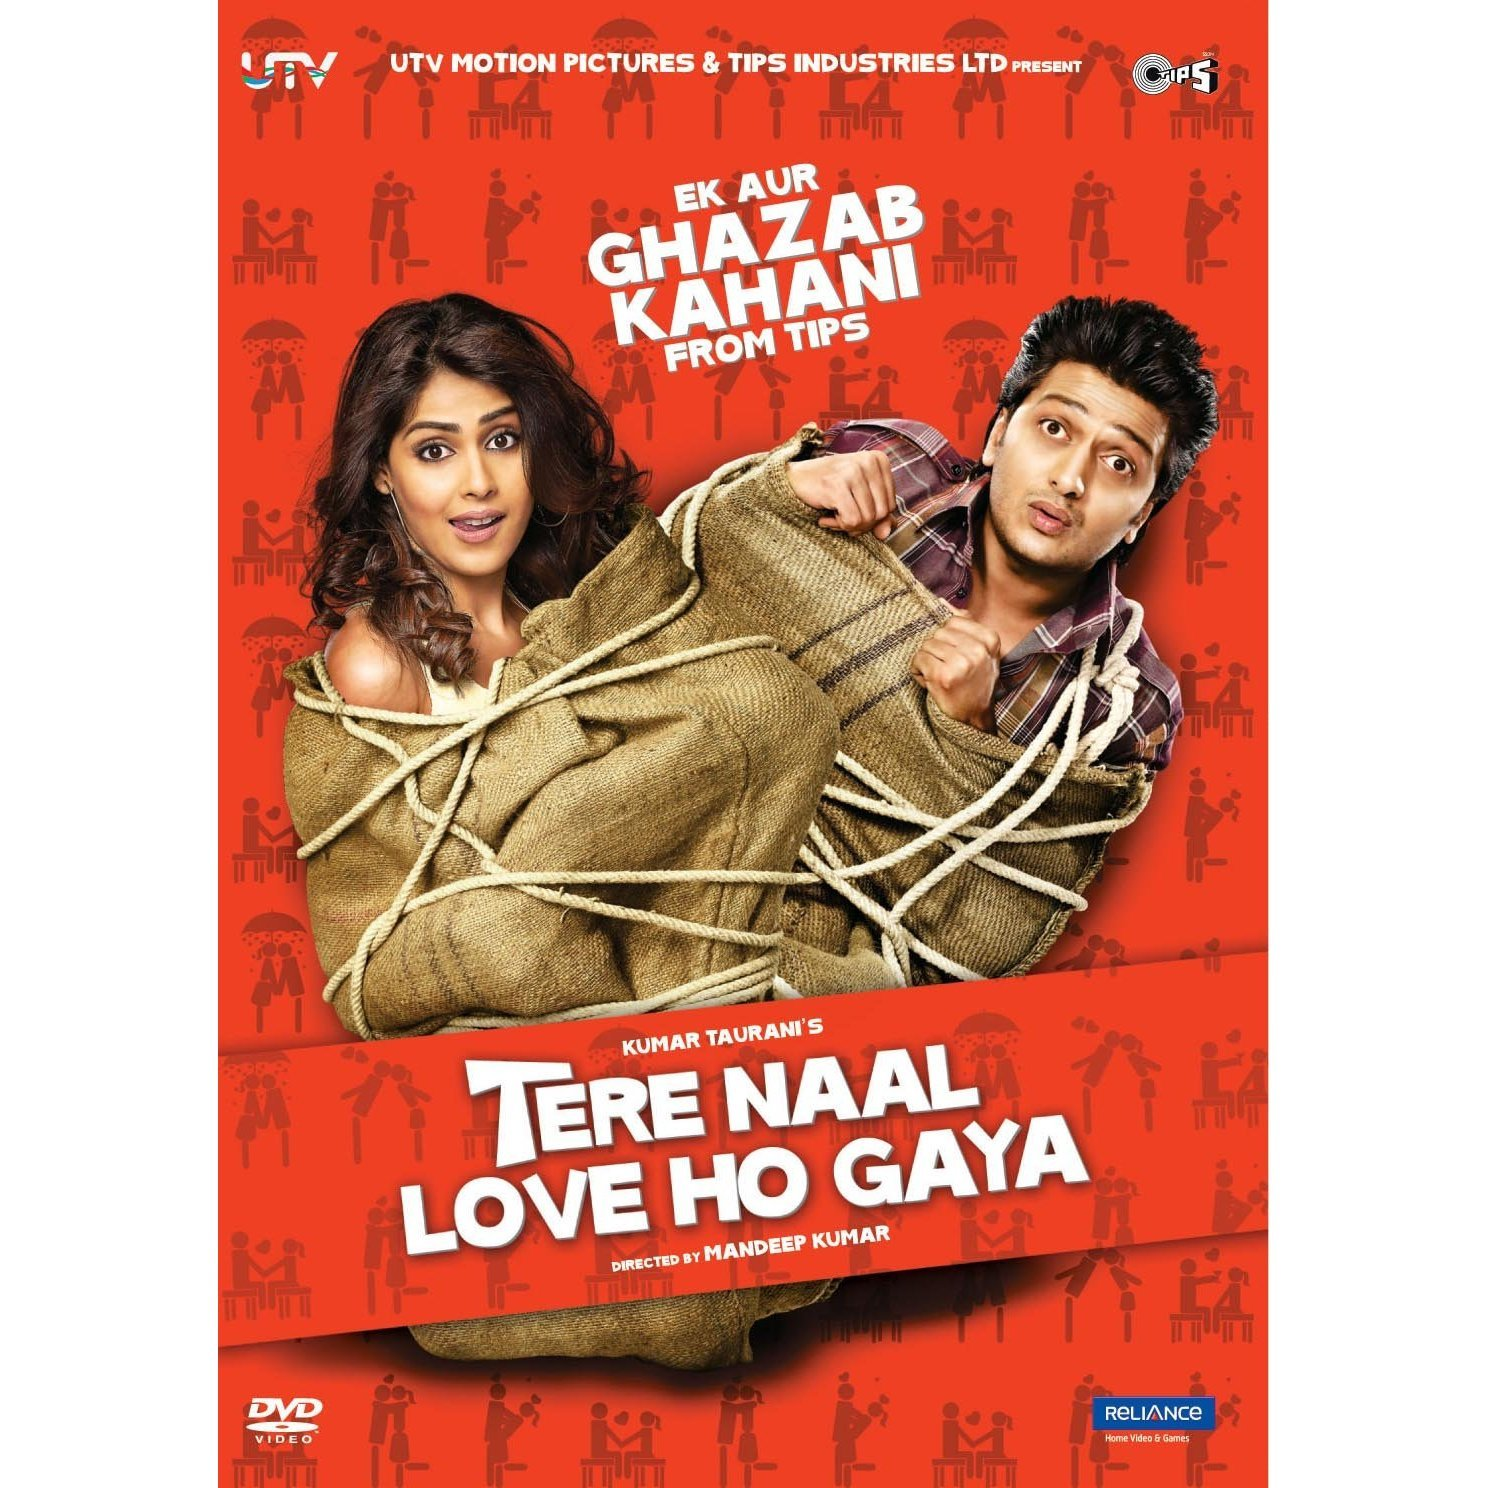 Ternal love ho gaya full movie - Humse badkar kaun film songs